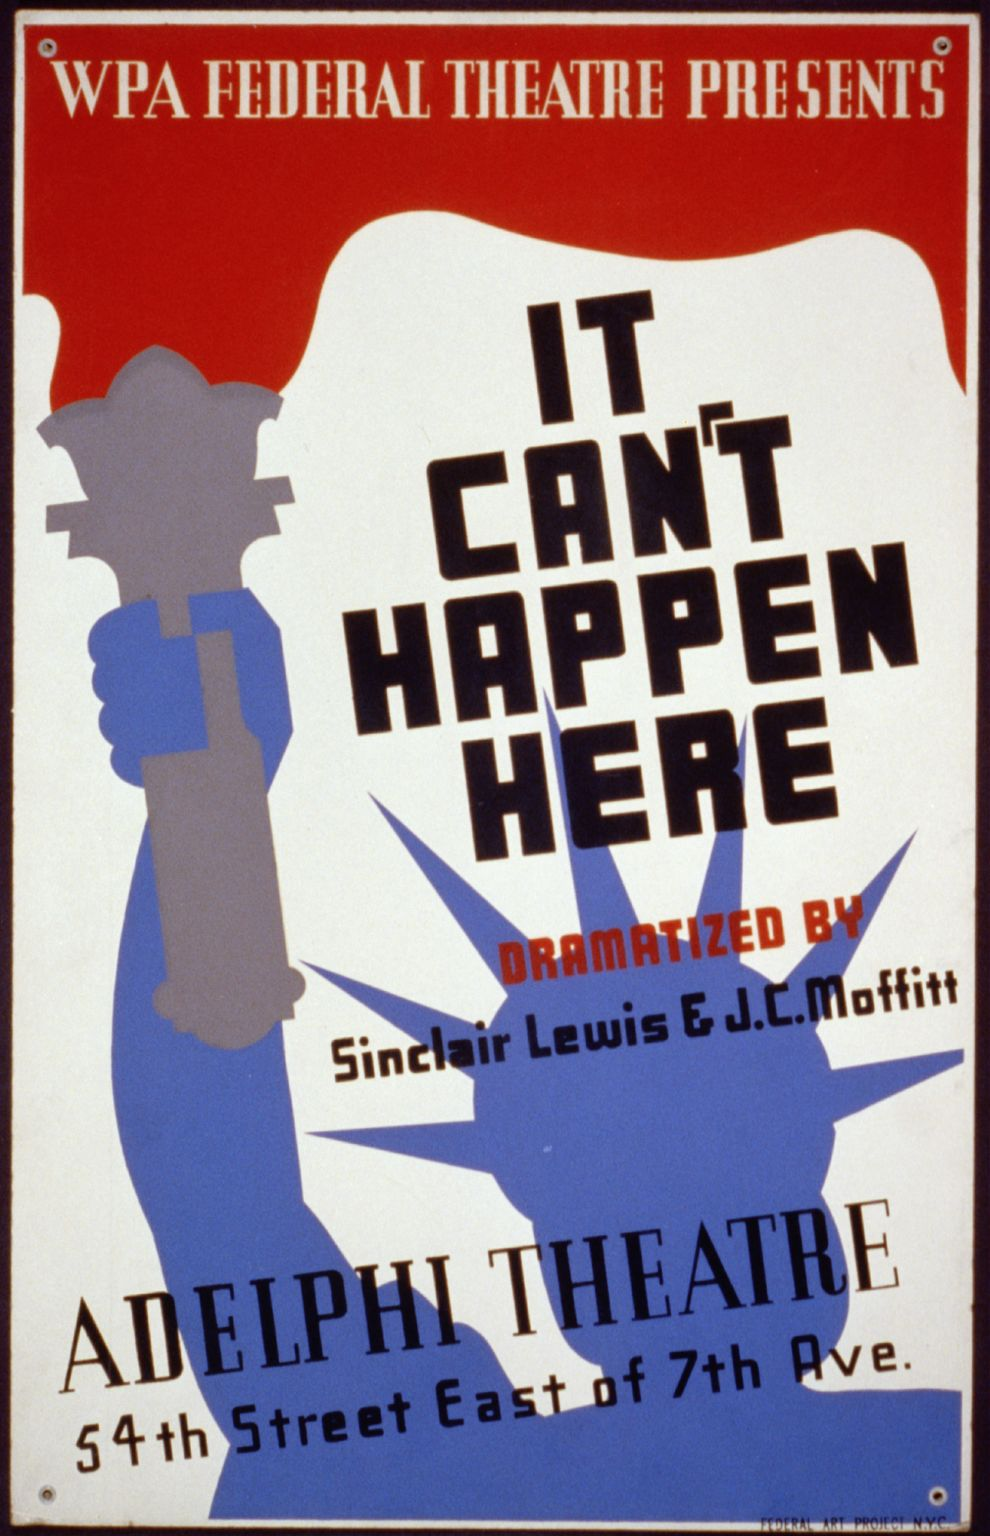 """WPA Federal Theatre presents """"It can't happen here"""" dramatized by Sinclair Lewis & J…"""